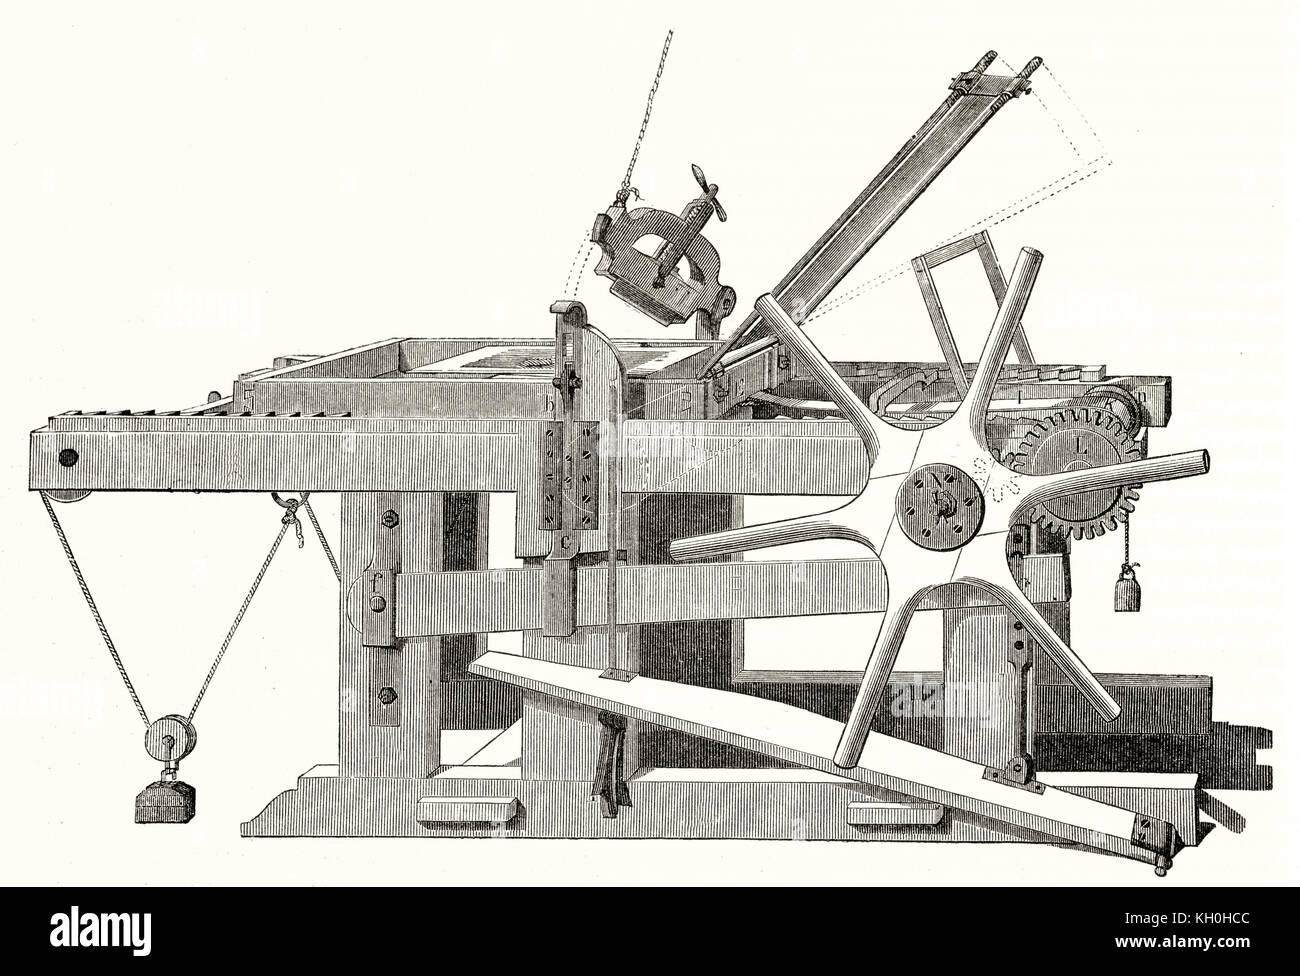 Old illustration of a lithography press. By unidentified author, publ. on Magasin Pittoresque, Paris, 1847 - Stock Image